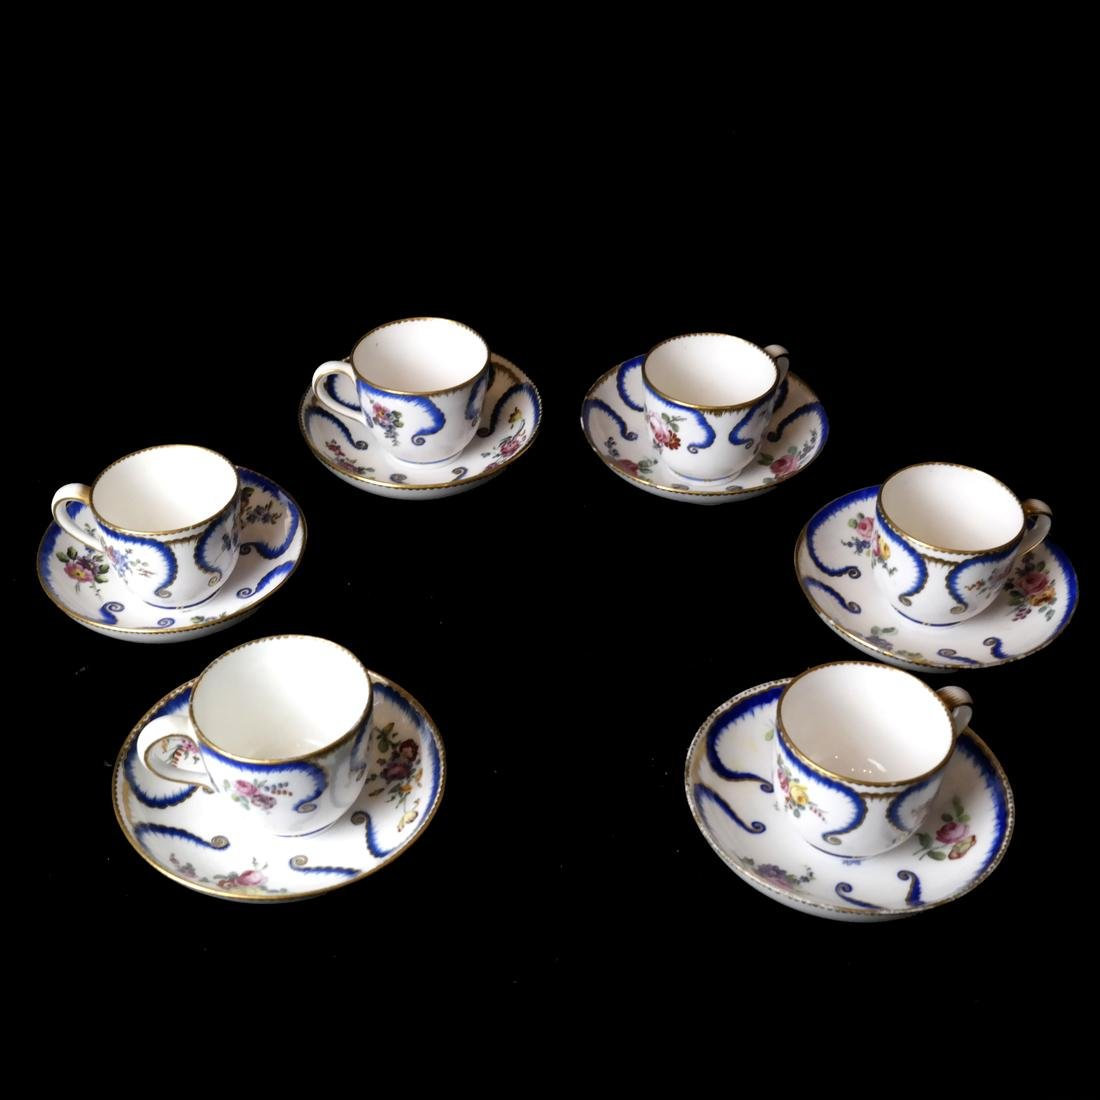 12-Piece Sevres Cups and Saucers